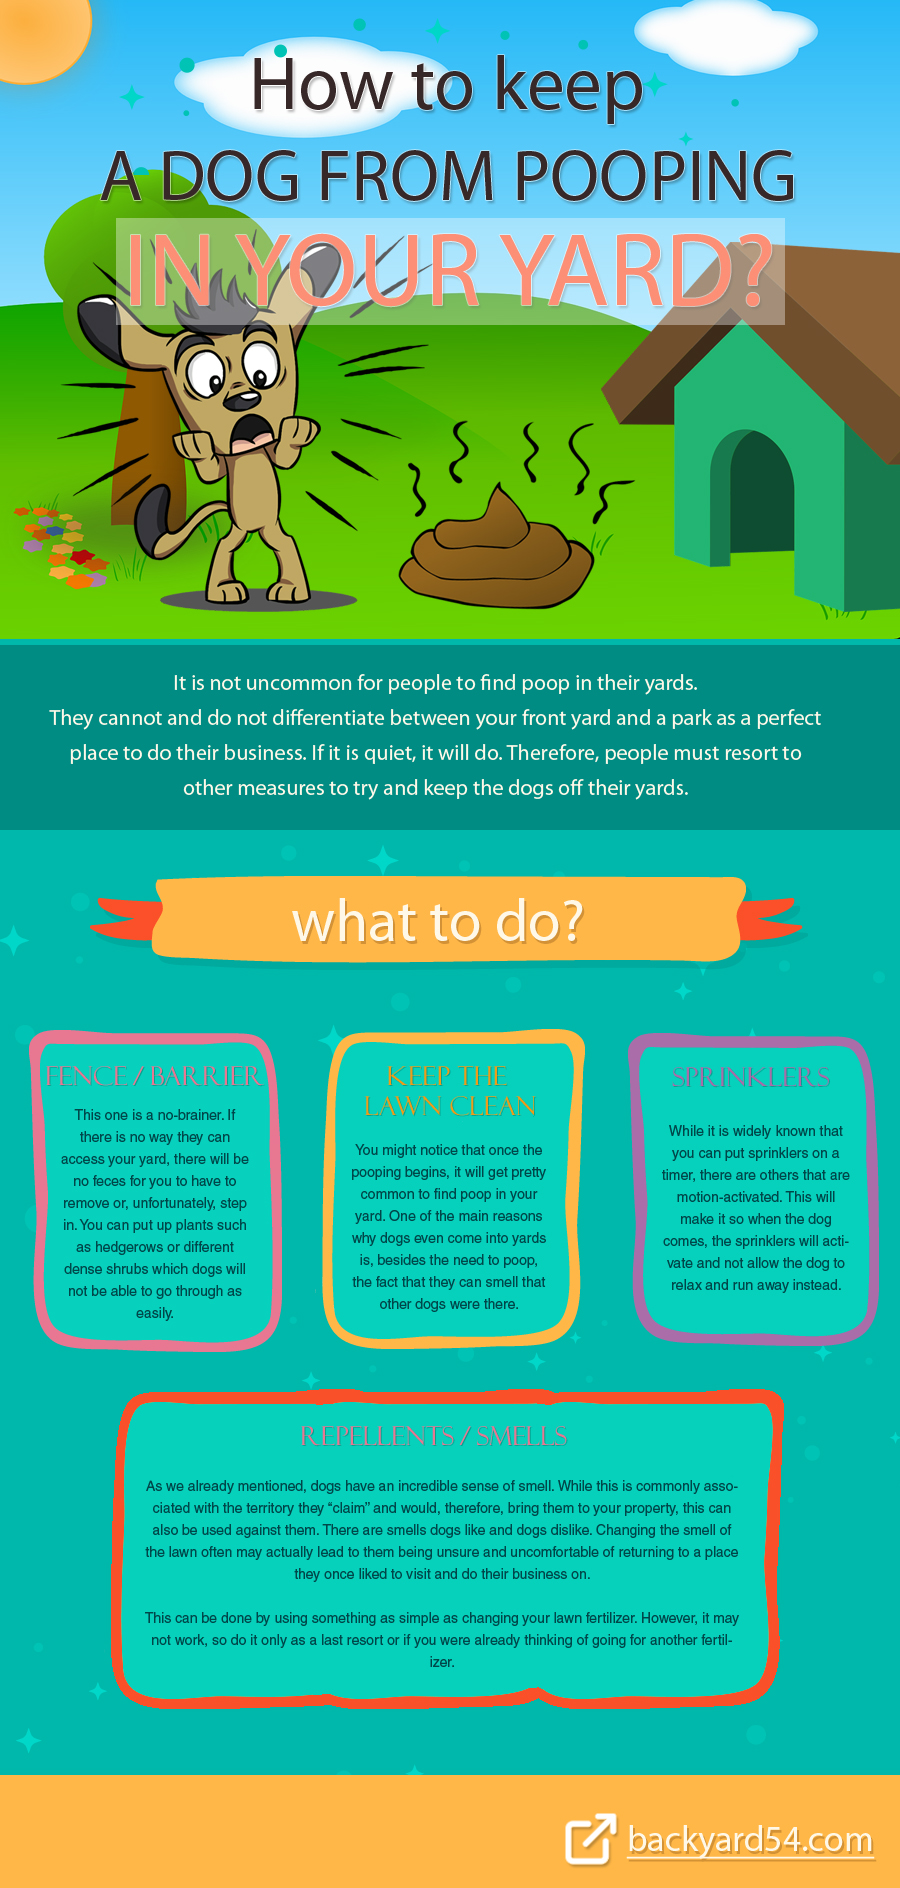 how-to-keep-a-dog-from-pooping-in-your-yard-infographic-plaza